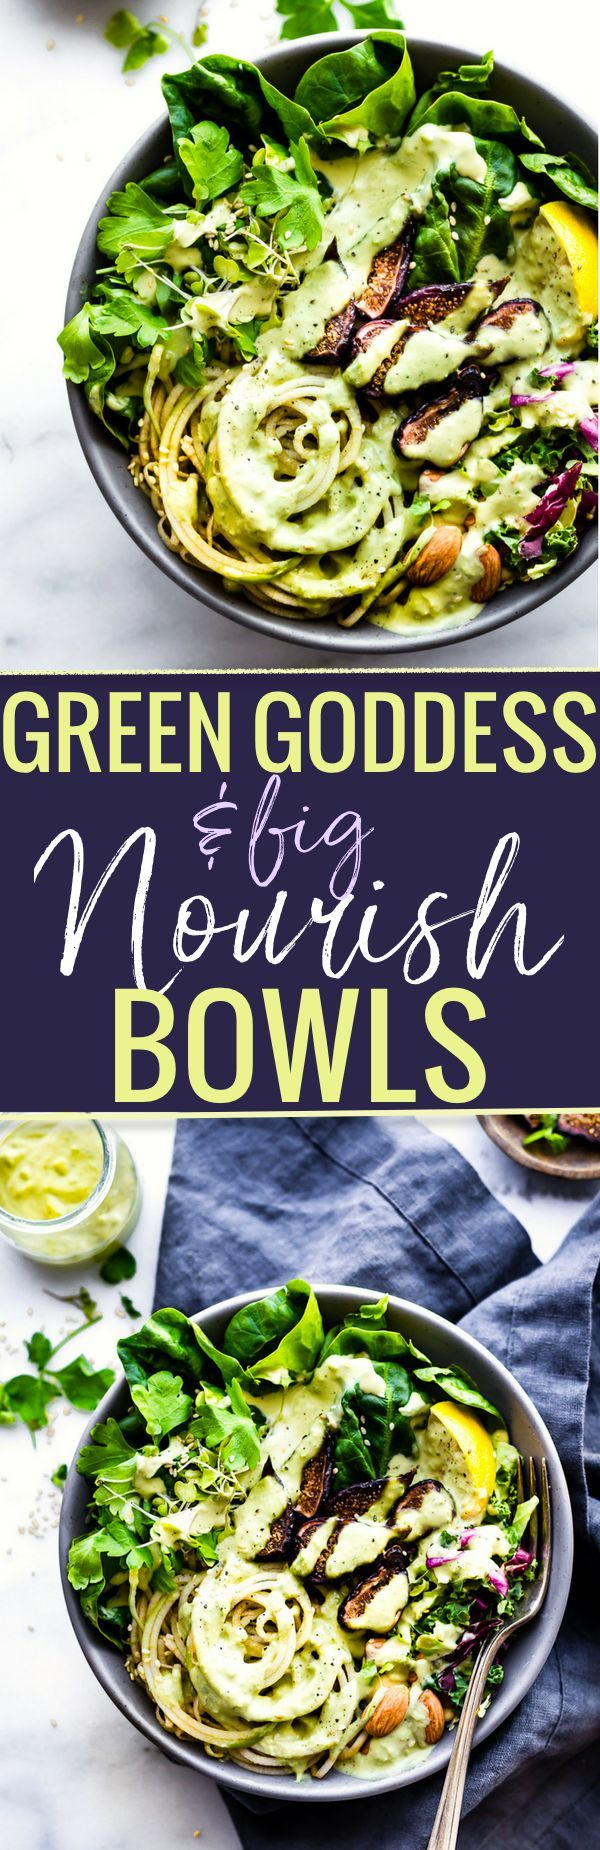 Quick and Easy Green Goddess Fig Nourish Bowls! These plant powered nourish bowls are packed with super greens, healthy  fats, nature's candy (Fruit and Figs), and topped with homemade green goddess dressing. They will fill you up and nourish you all at once. Paleo, Vegan, and Whole 30 friendly! http://www.cottercrunch.com